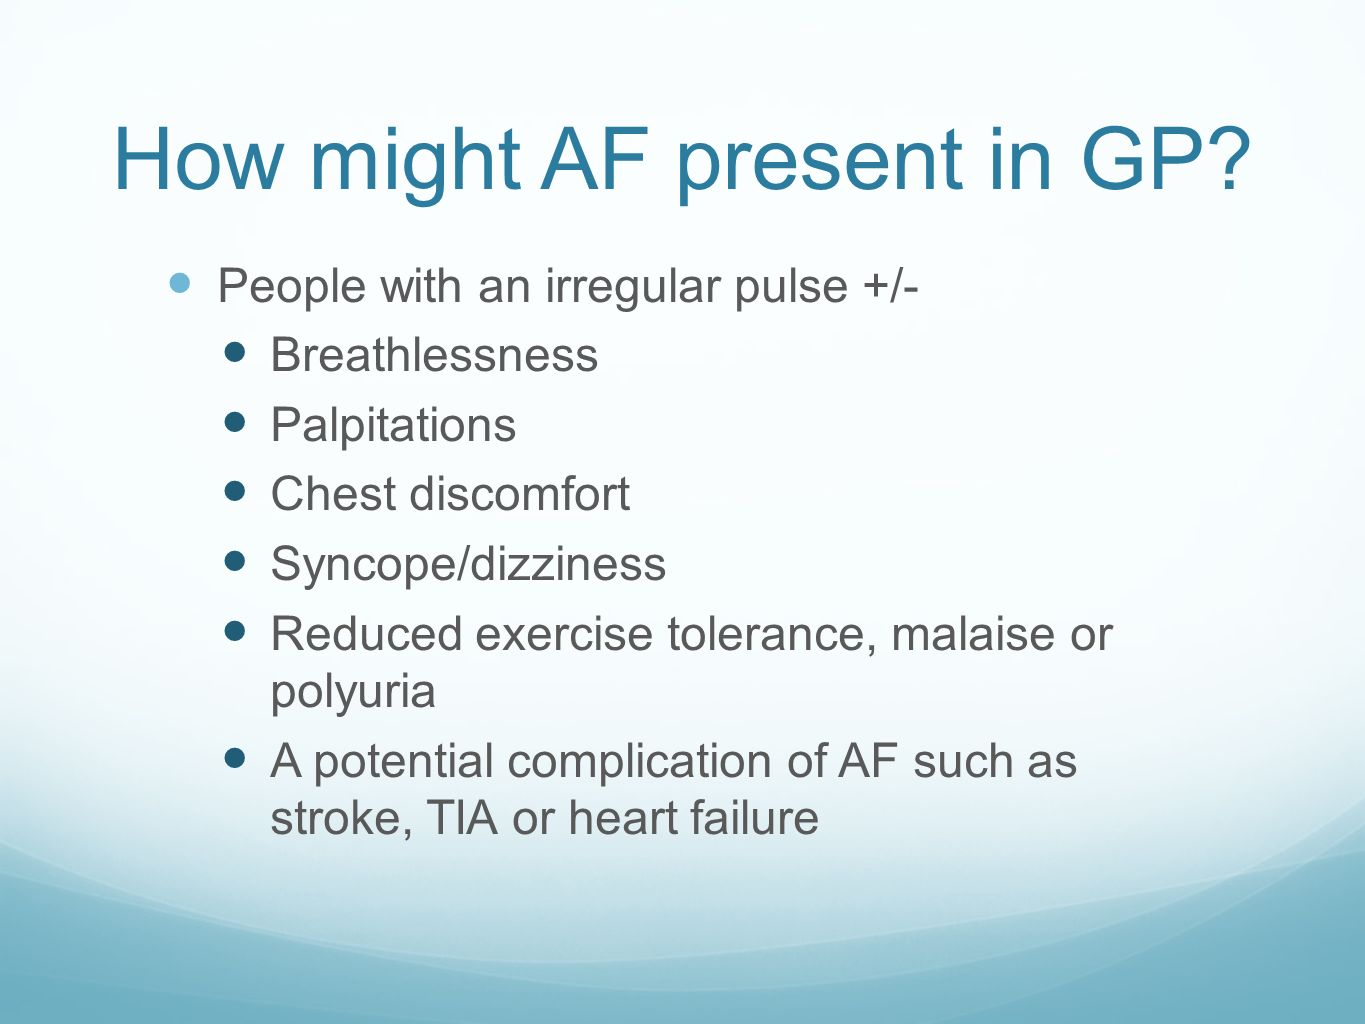 How might AF present in GP? People with an irregular pulse +/- Breathlessness Palpitations Chest discomfort Syncope/dizziness Reduced exercise toleran